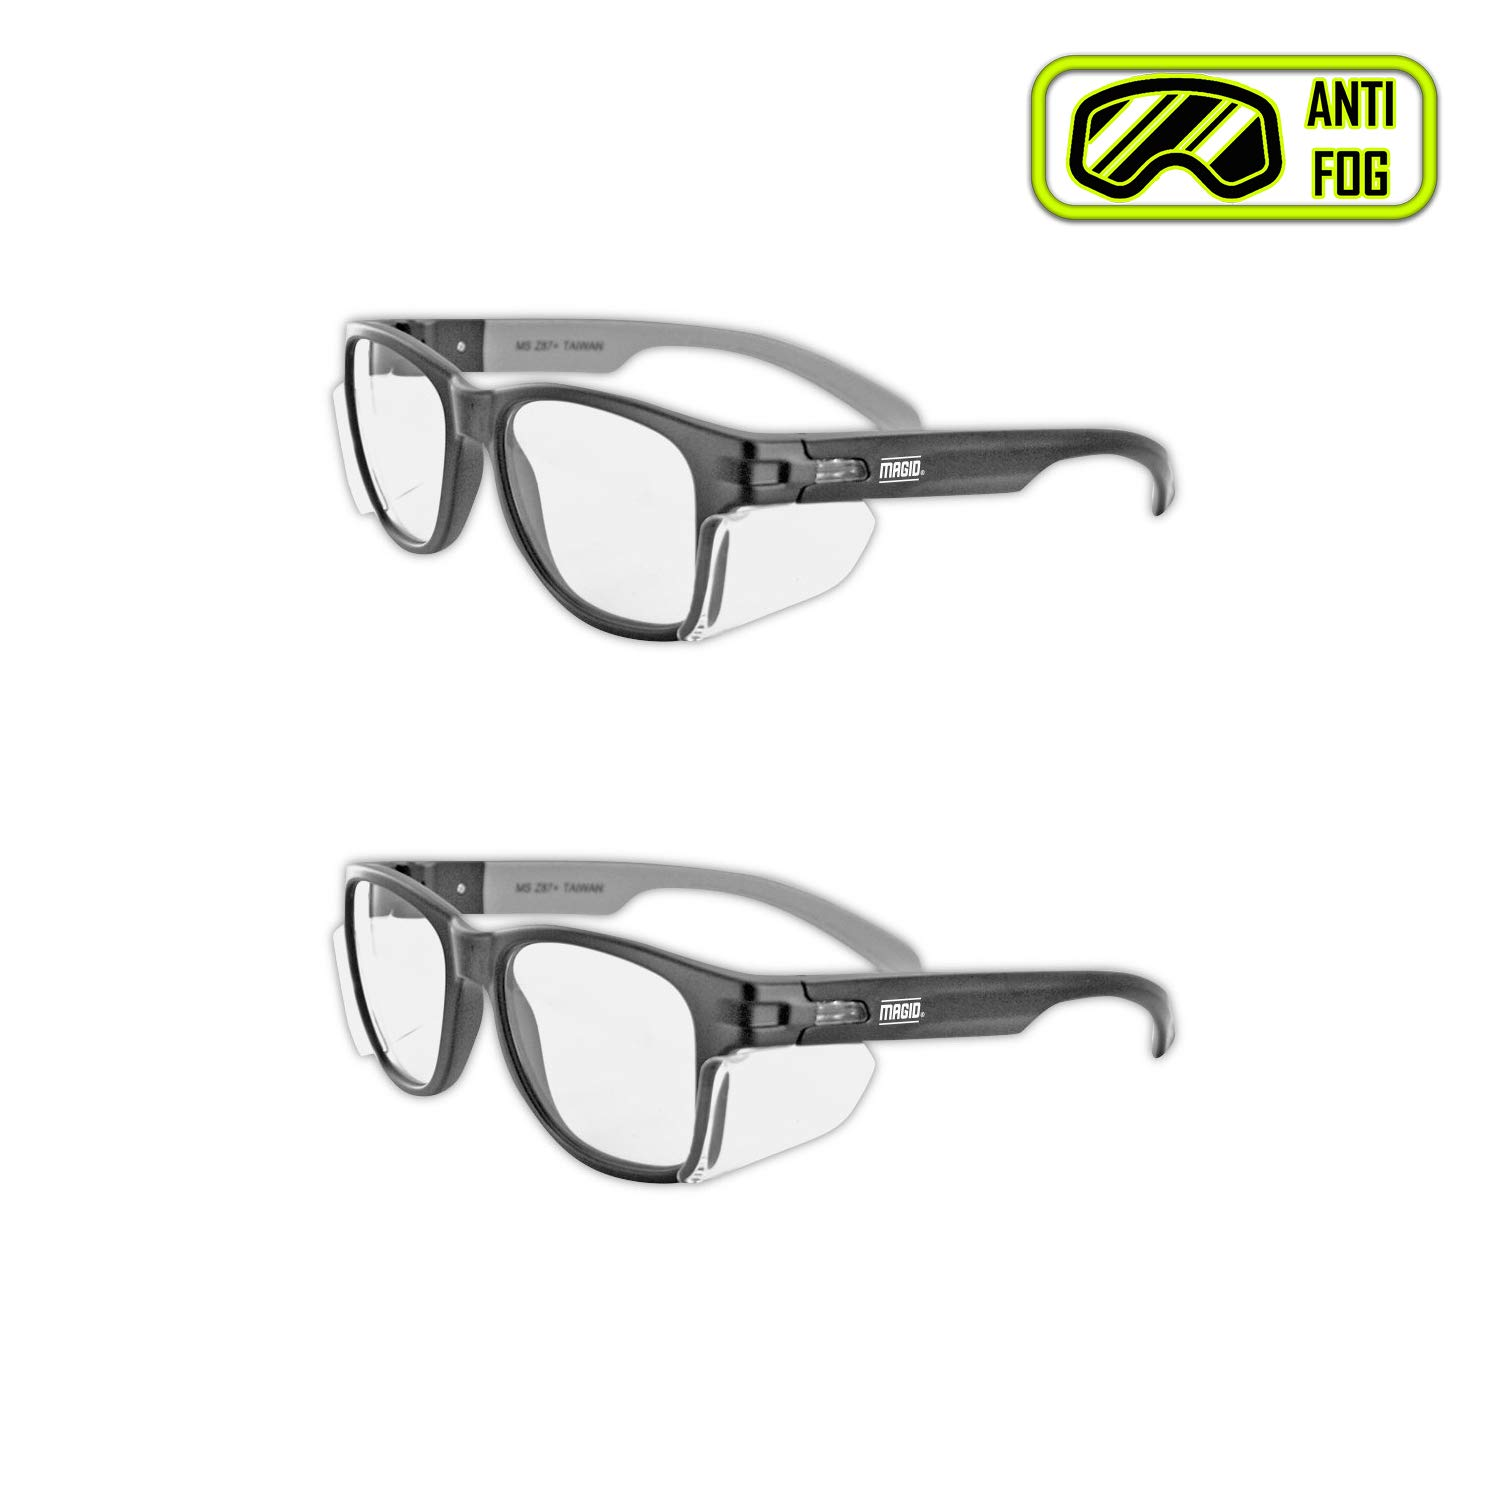 MAGID Y50BKAFC Iconic Y50 Design Series Safety Glasses with Side Shields | ANSI Z87+ Performance, Scratch & Fog Resistant, Comfortable & Stylish, Cloth Case Included, Clear Lens (2 Pair)